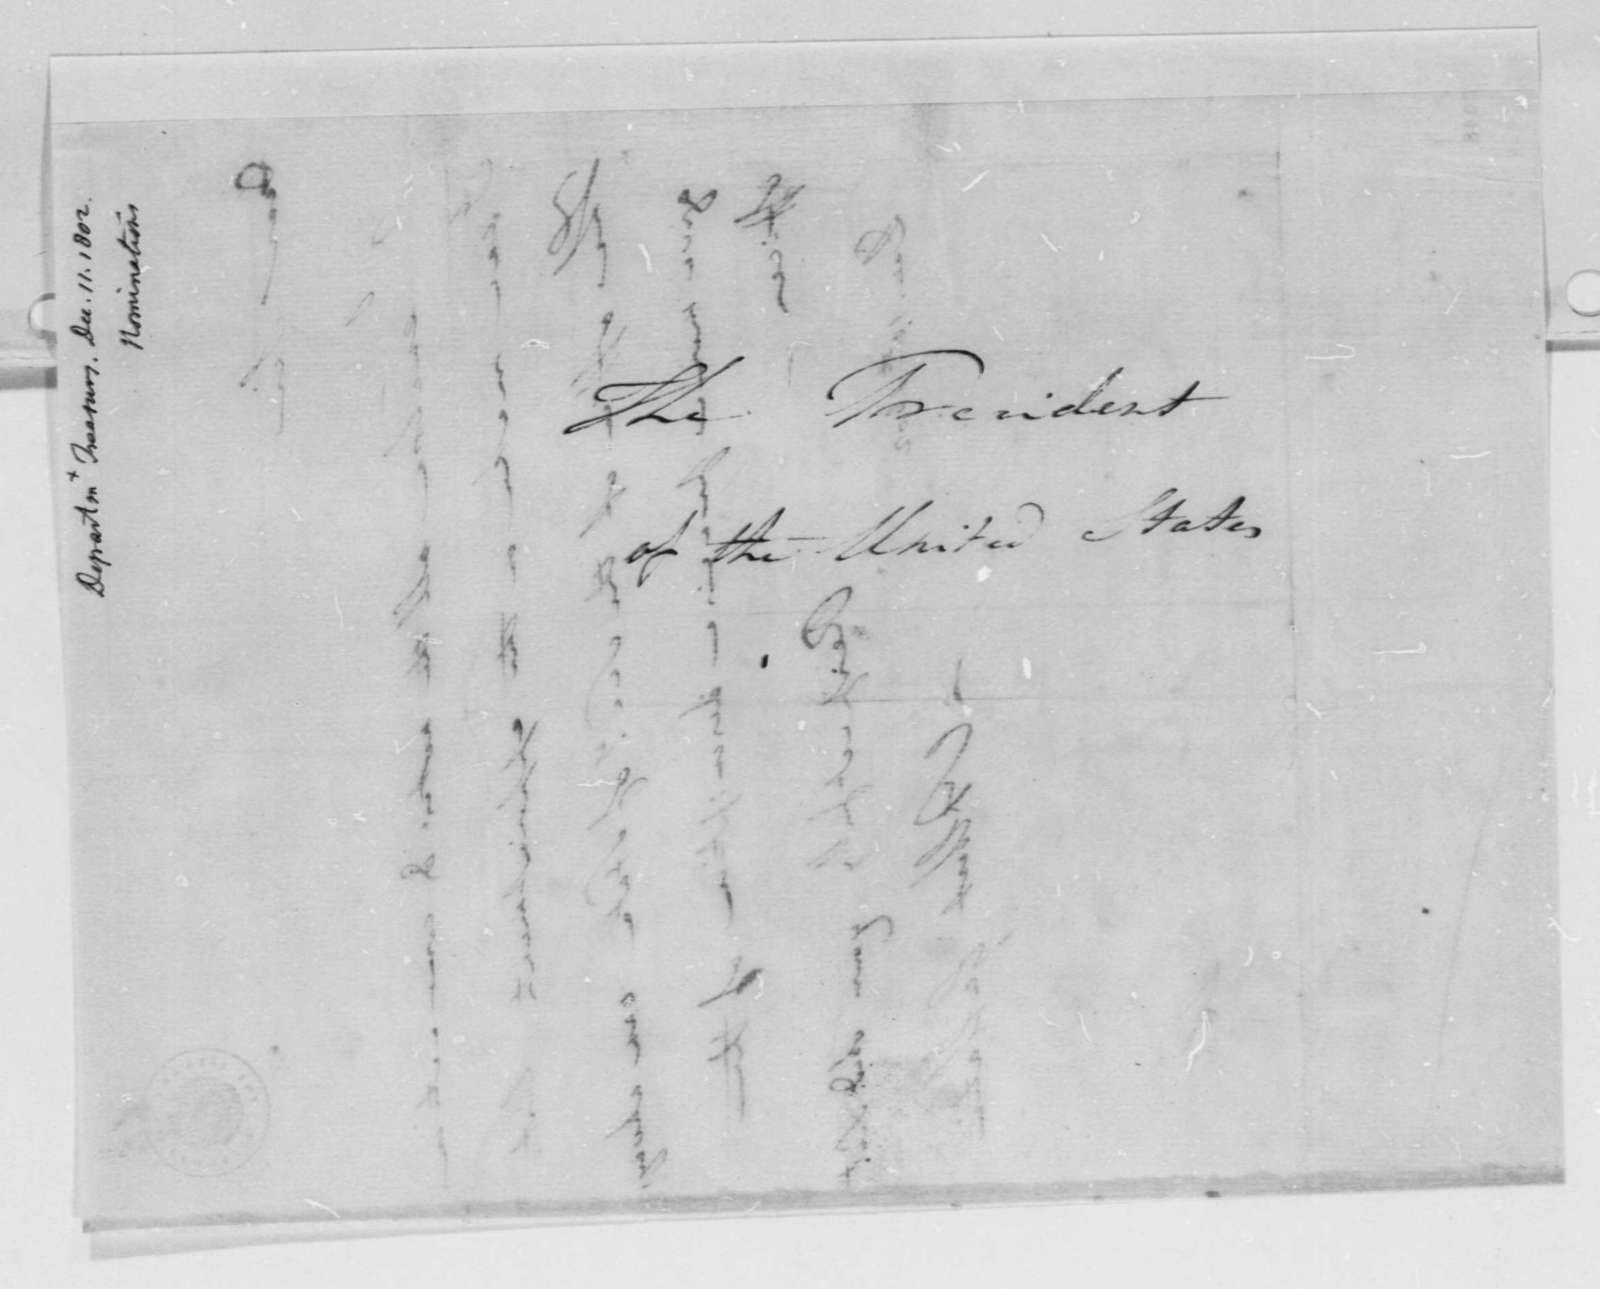 Albert Gallatin to Thomas Jefferson, December 10, 1802, with Notes and List